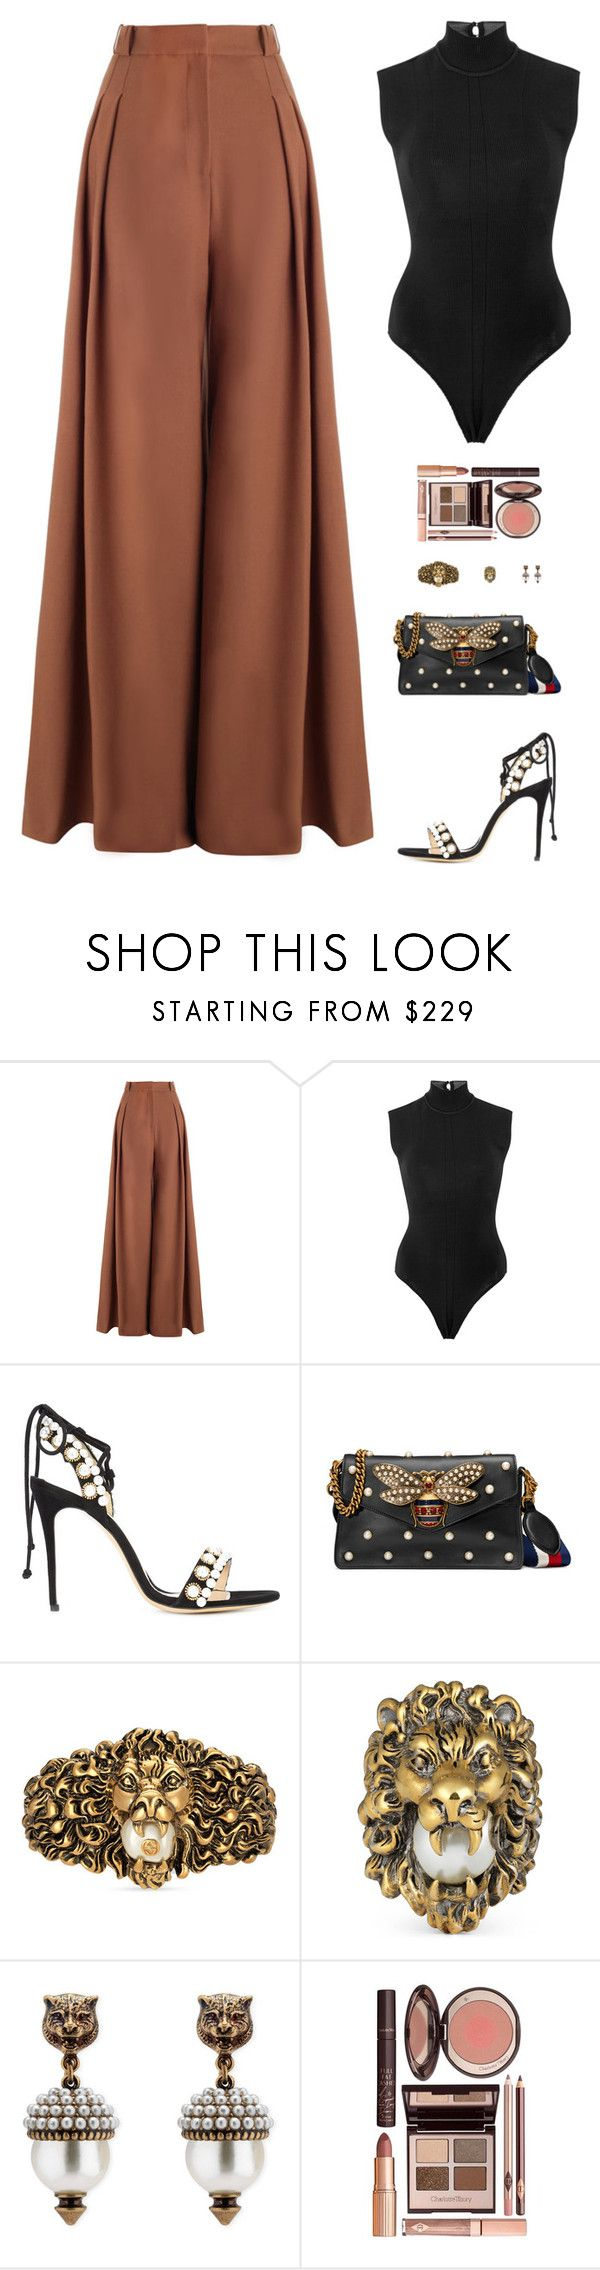 """""""Sin título #5307"""" by mdmsb ❤ liked on Polyvore featuring Zimmermann, Monique Lhuillier, Gucci and Charlotte Tilbury"""